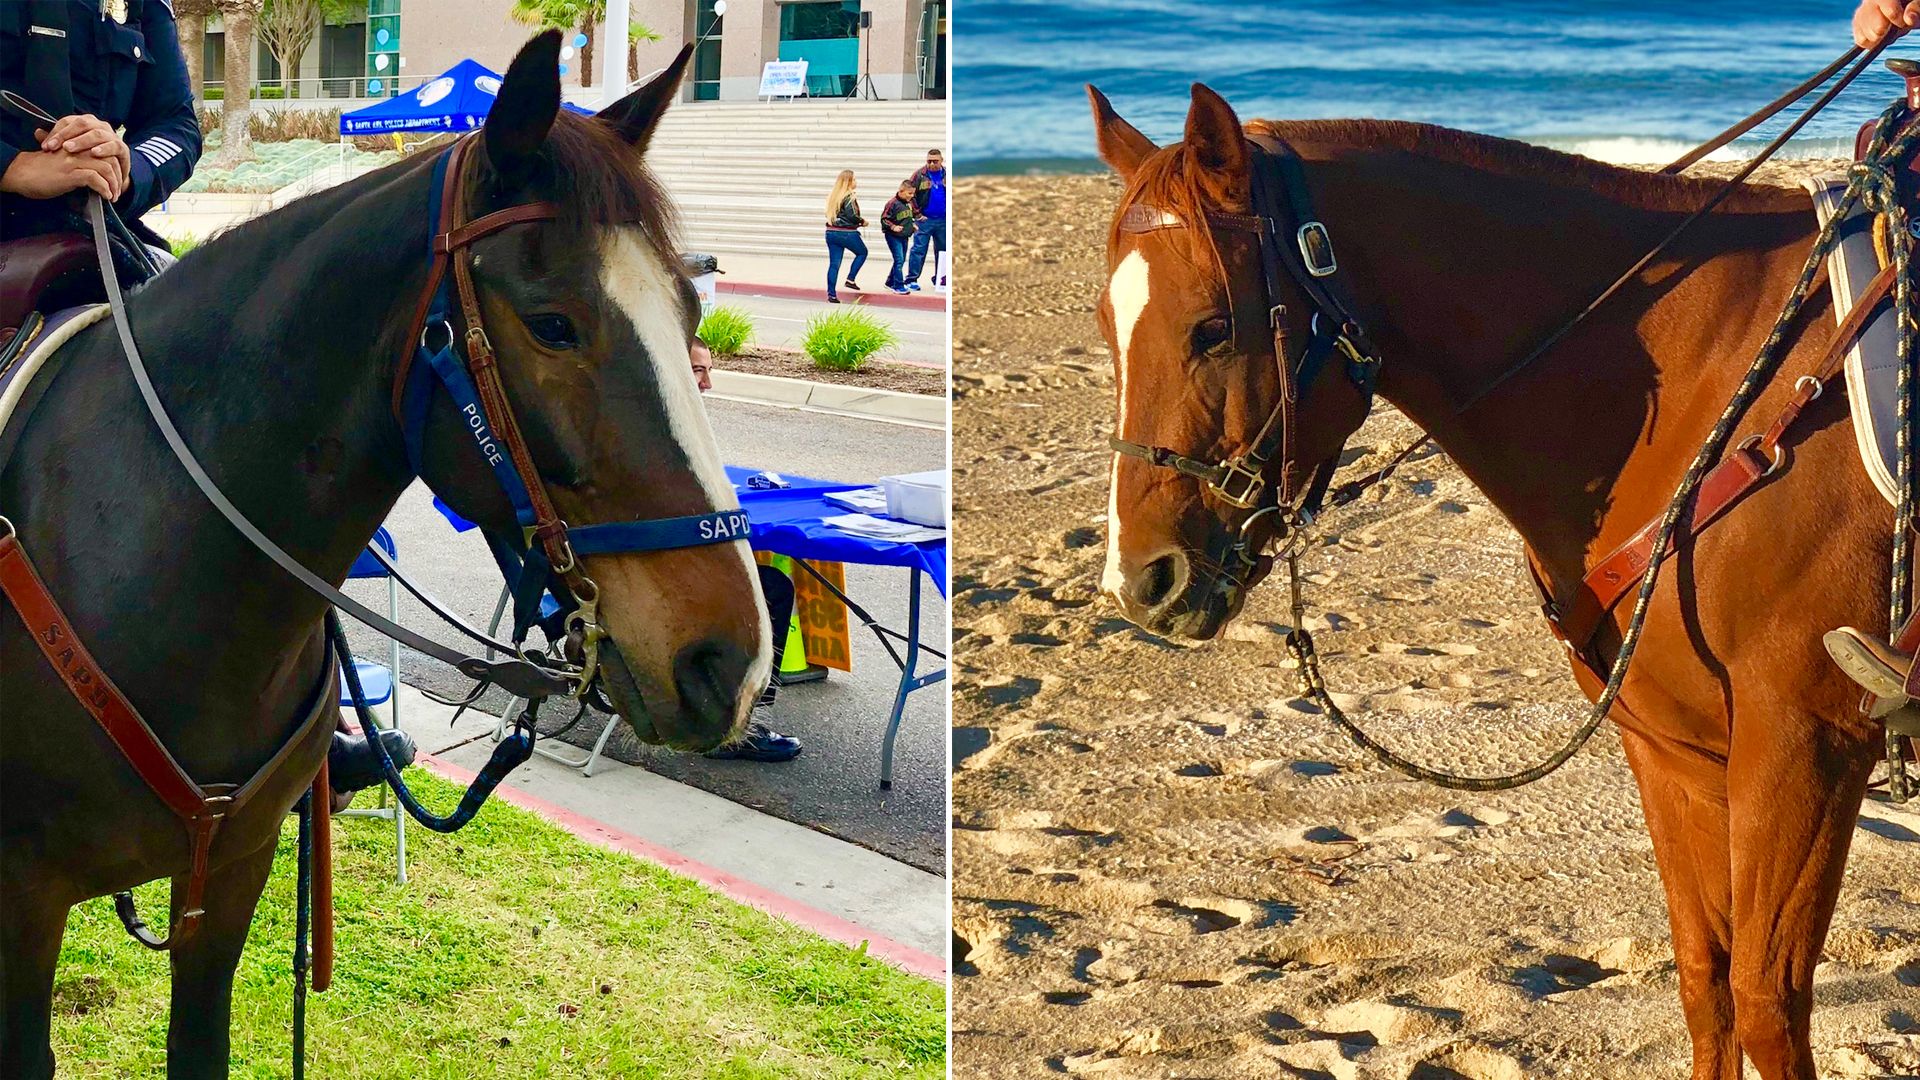 Santa Ana Police Department horses Chex (left) and Willa (right) appear in undated photos provided by the Santa Ana Police Department on Feb. 24, 2019.